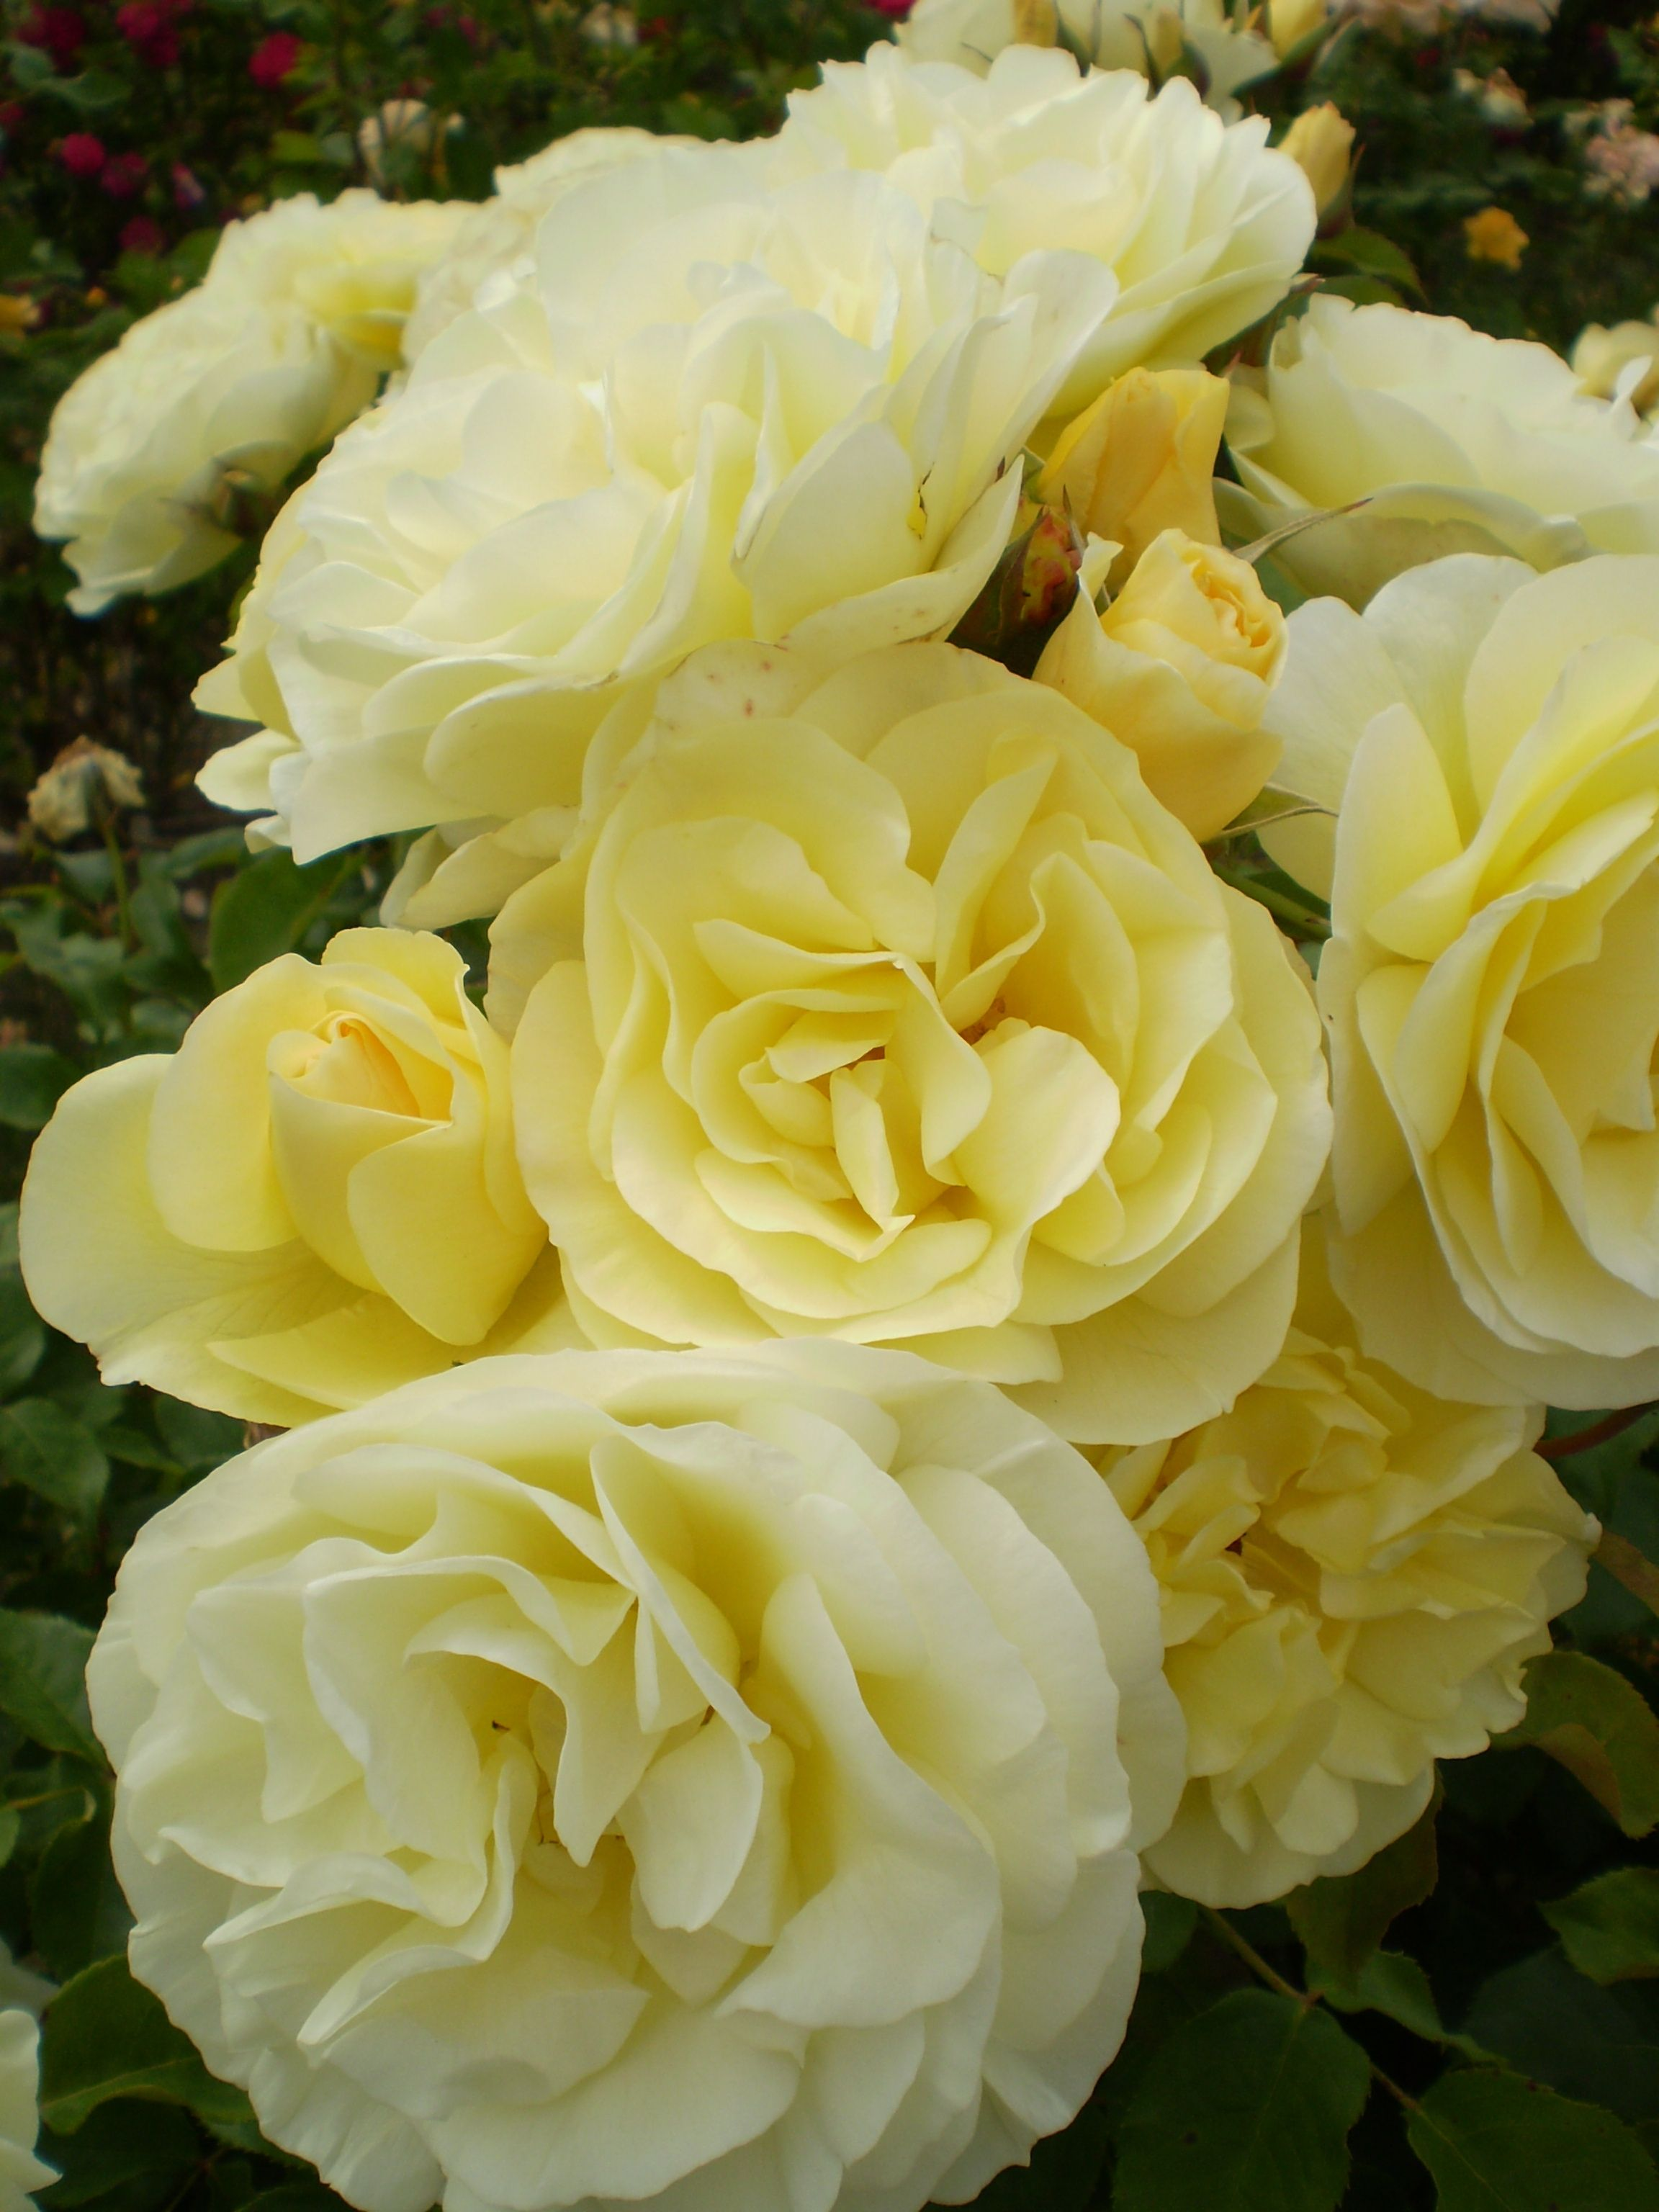 Pin By Erika Terry On Added To My Garden Rose Shrub Roses Winter Greenhouse